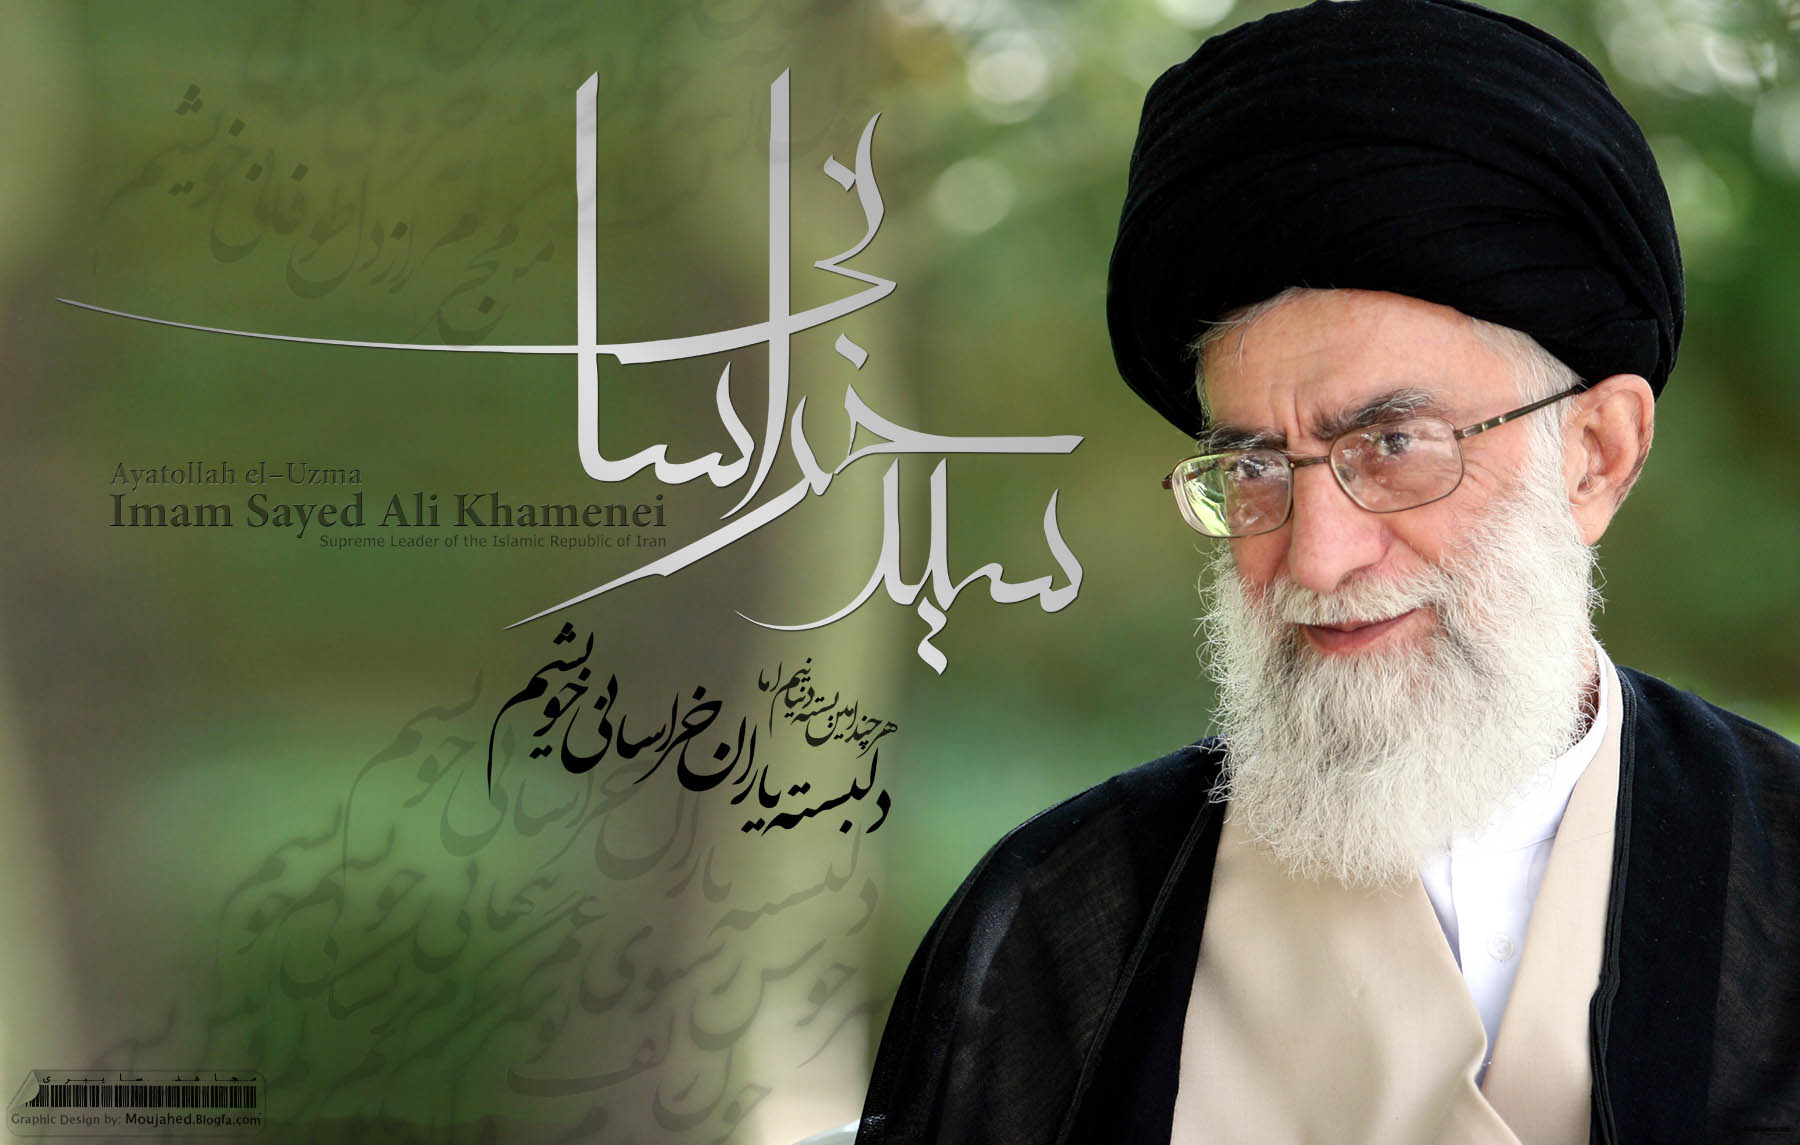 http://moujahed.persiangig.com/image/(2)sayyed%20Khorasani%20%D8%B3%DB%8C%D8%AF%20%D8%AE%D8%B1%D8%A7%D8%B3%D8%A7%D9%86%DB%8C%20-%20medium.jpg